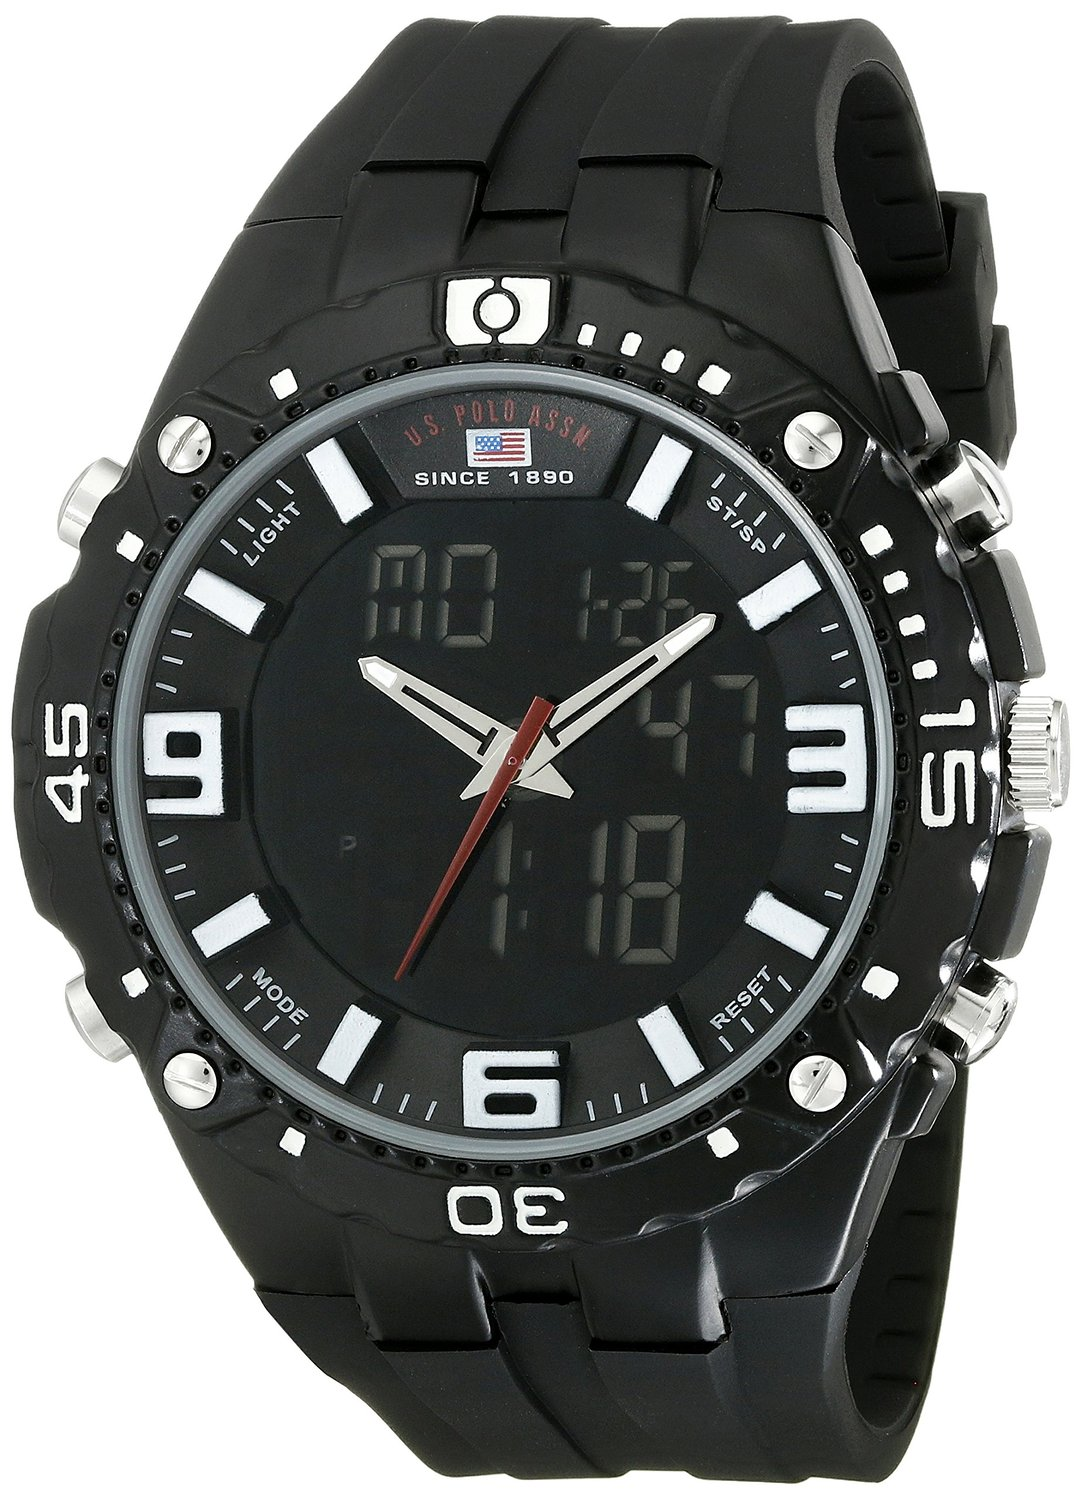 a068e74d198 Get Quotations · U.S. Polo Assn. Sport Men s US9174 Black Silicone Analog  Digital Sport Watch